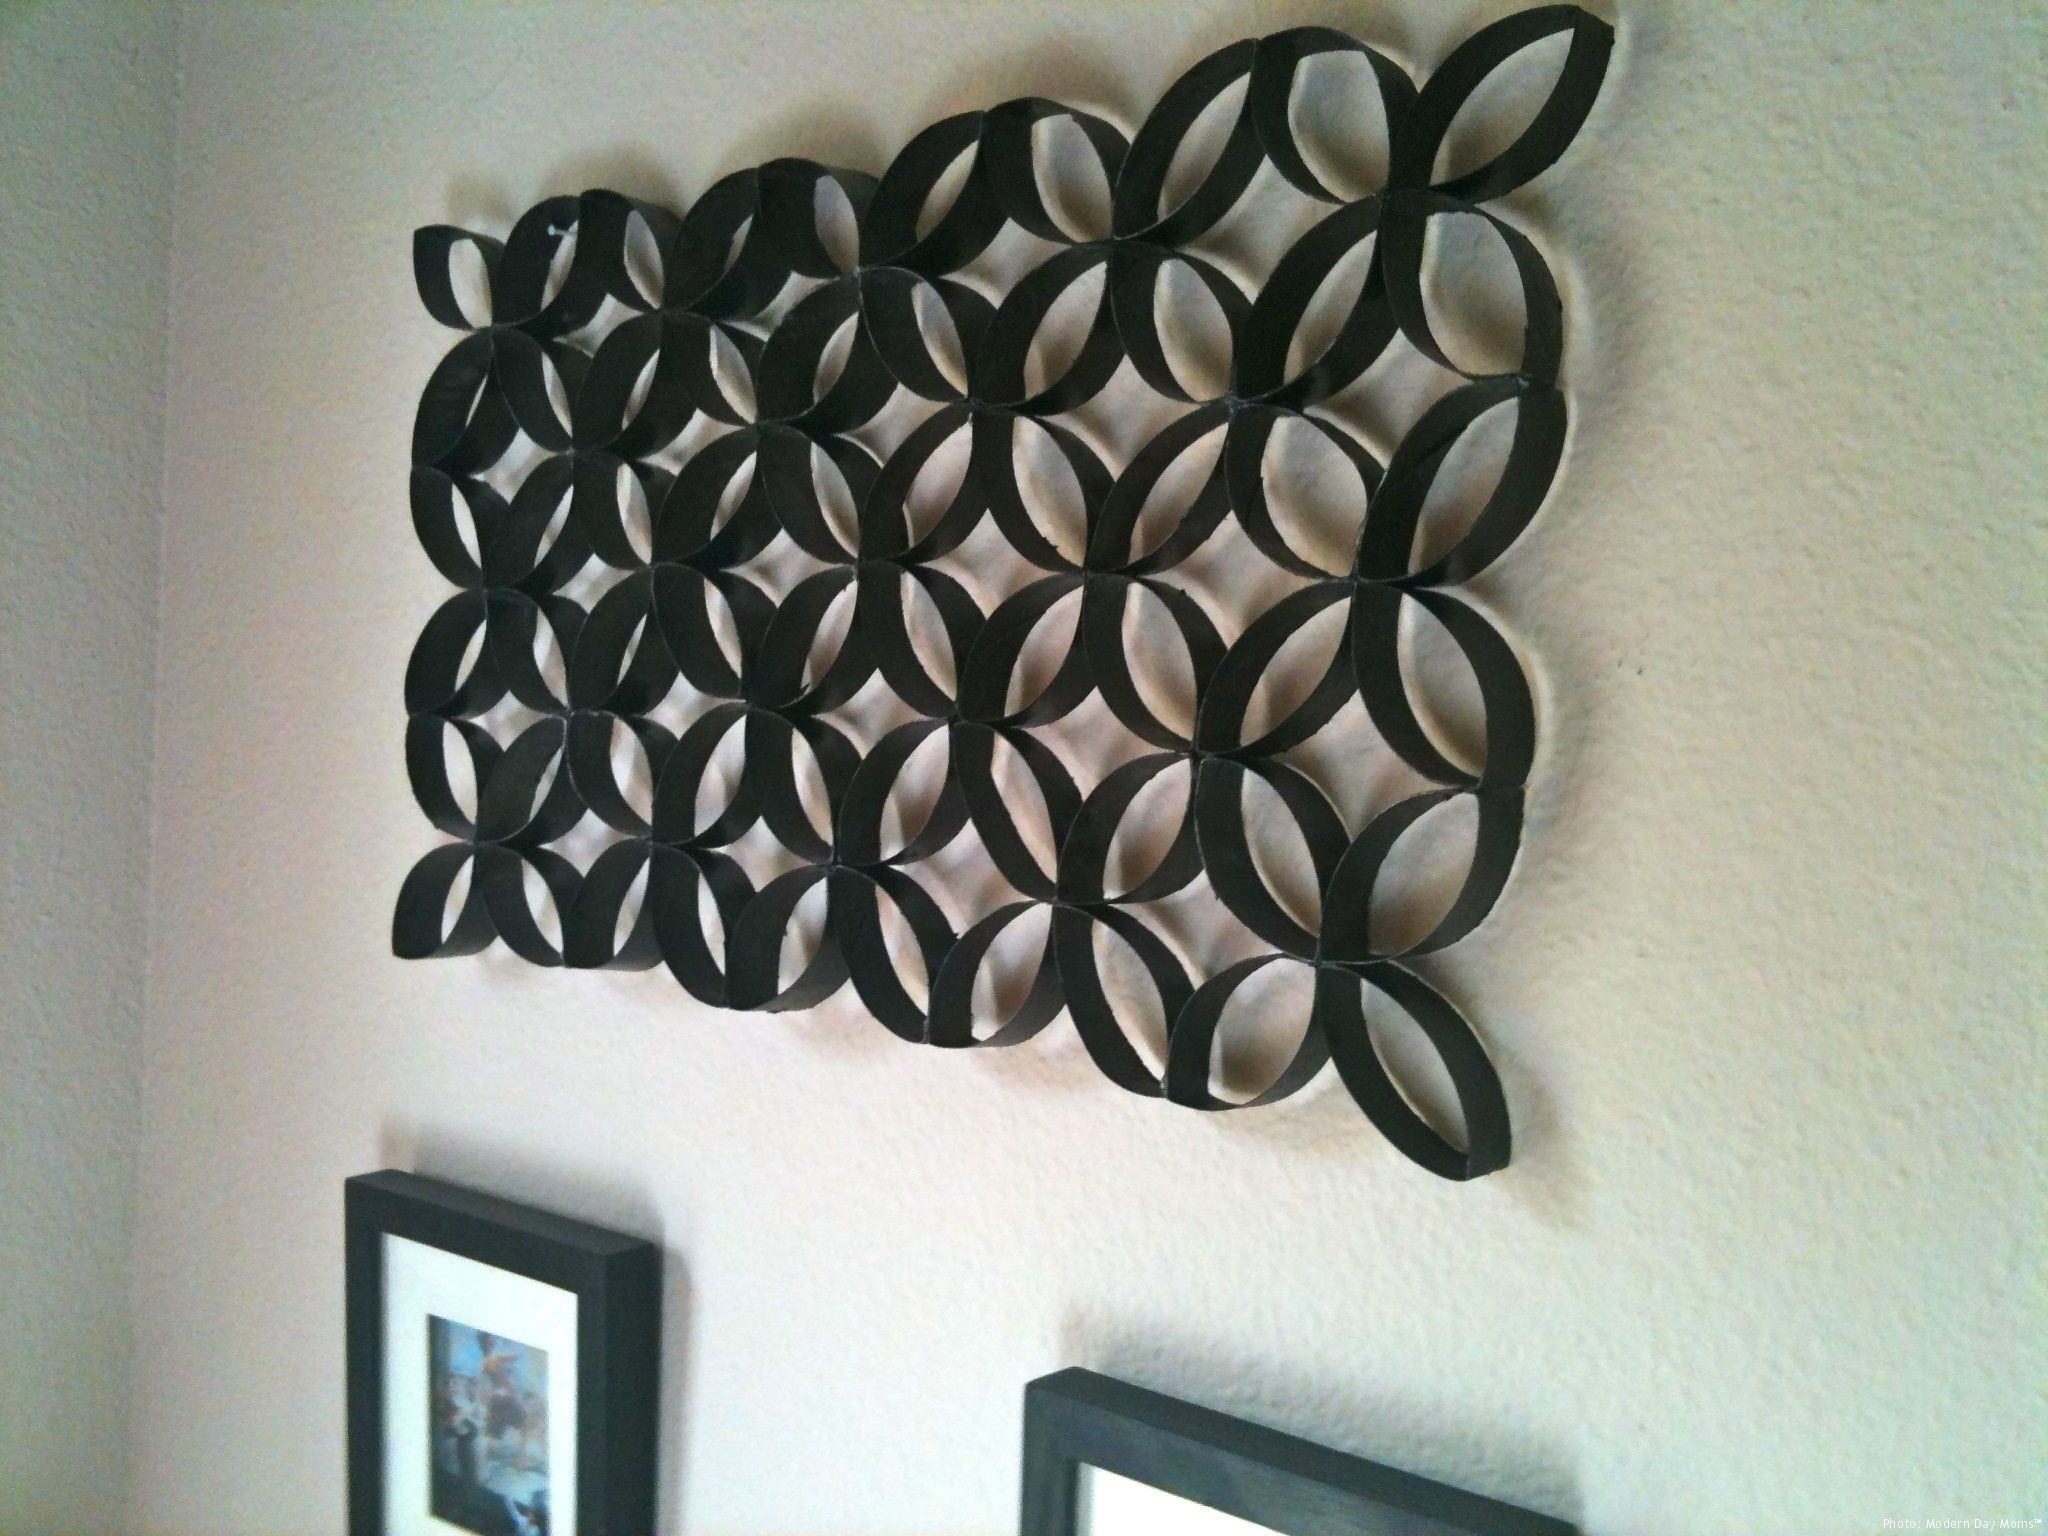 TP Wall Art Awesome way to use